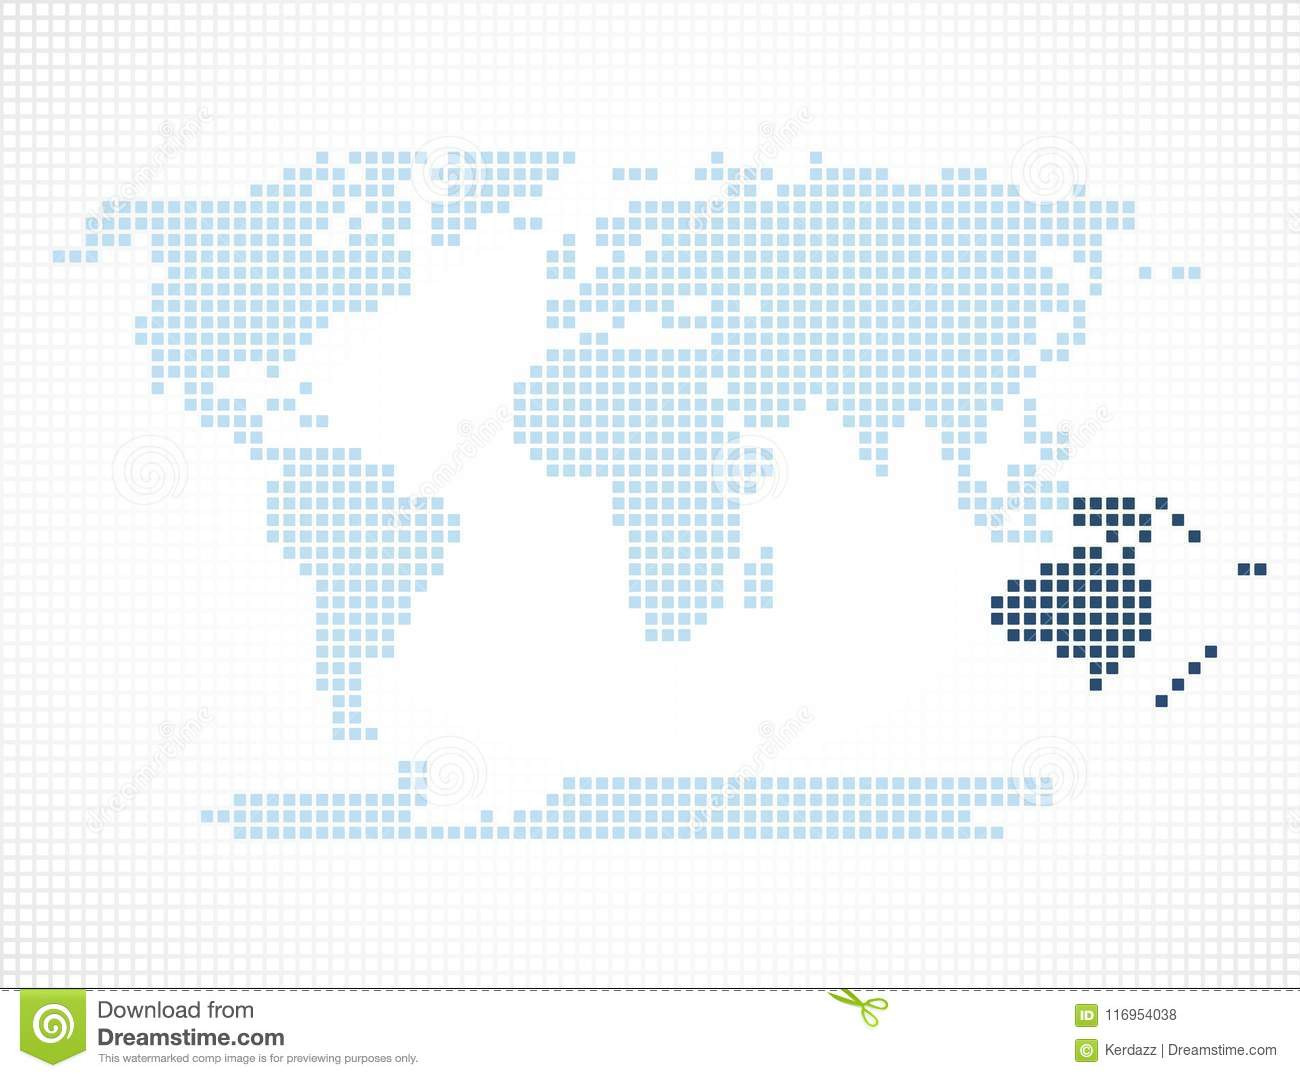 Australia continent on the world map stock vector illustration of australia continent on the world map gumiabroncs Images